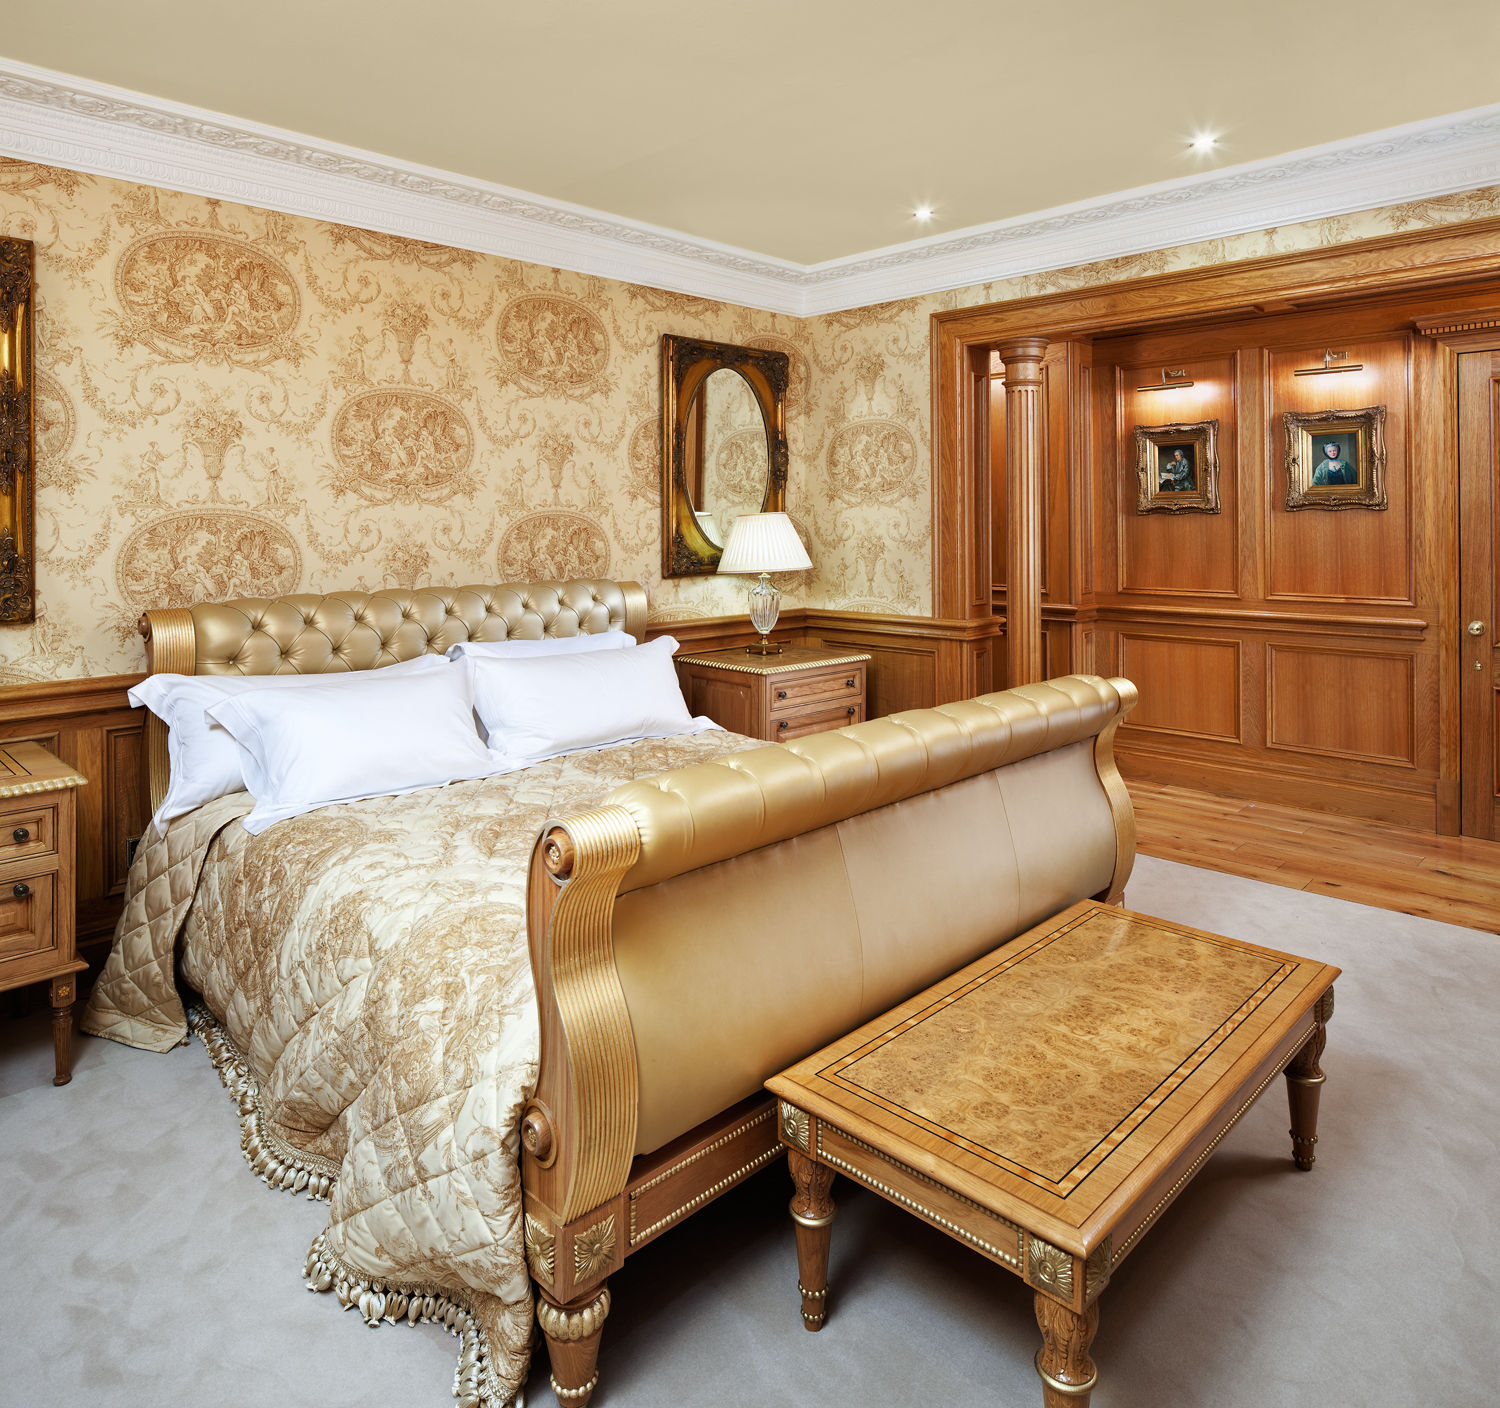 Neale Smith Photography Clive Christian - Clive christian bedroom furniture